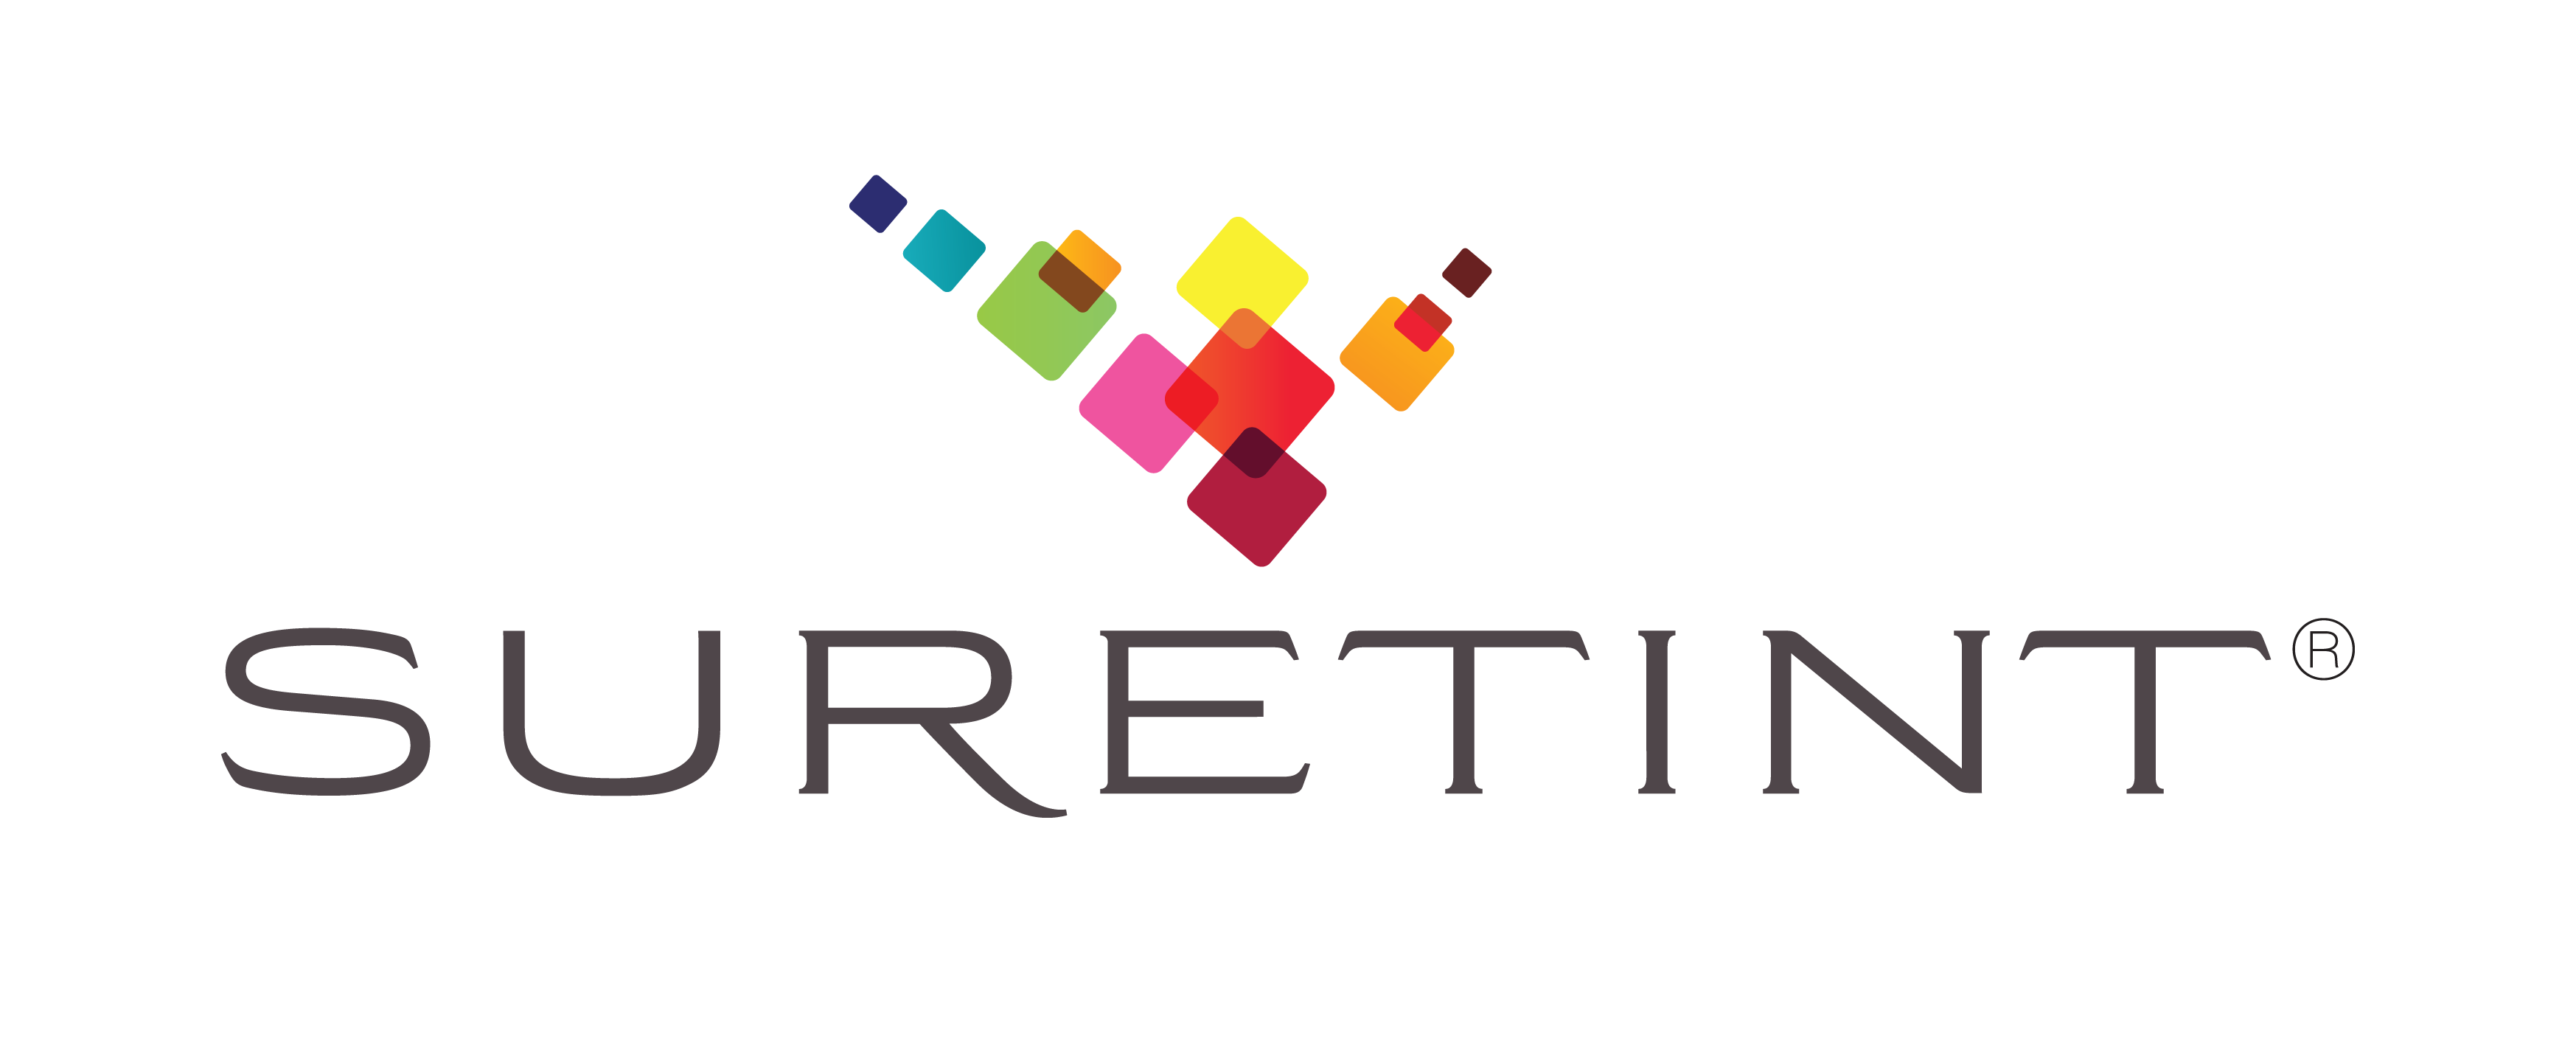 Suretint Technologies, The Salon Industry Color Management Leader, Unveils Groundbreaking Color Conversion Technology